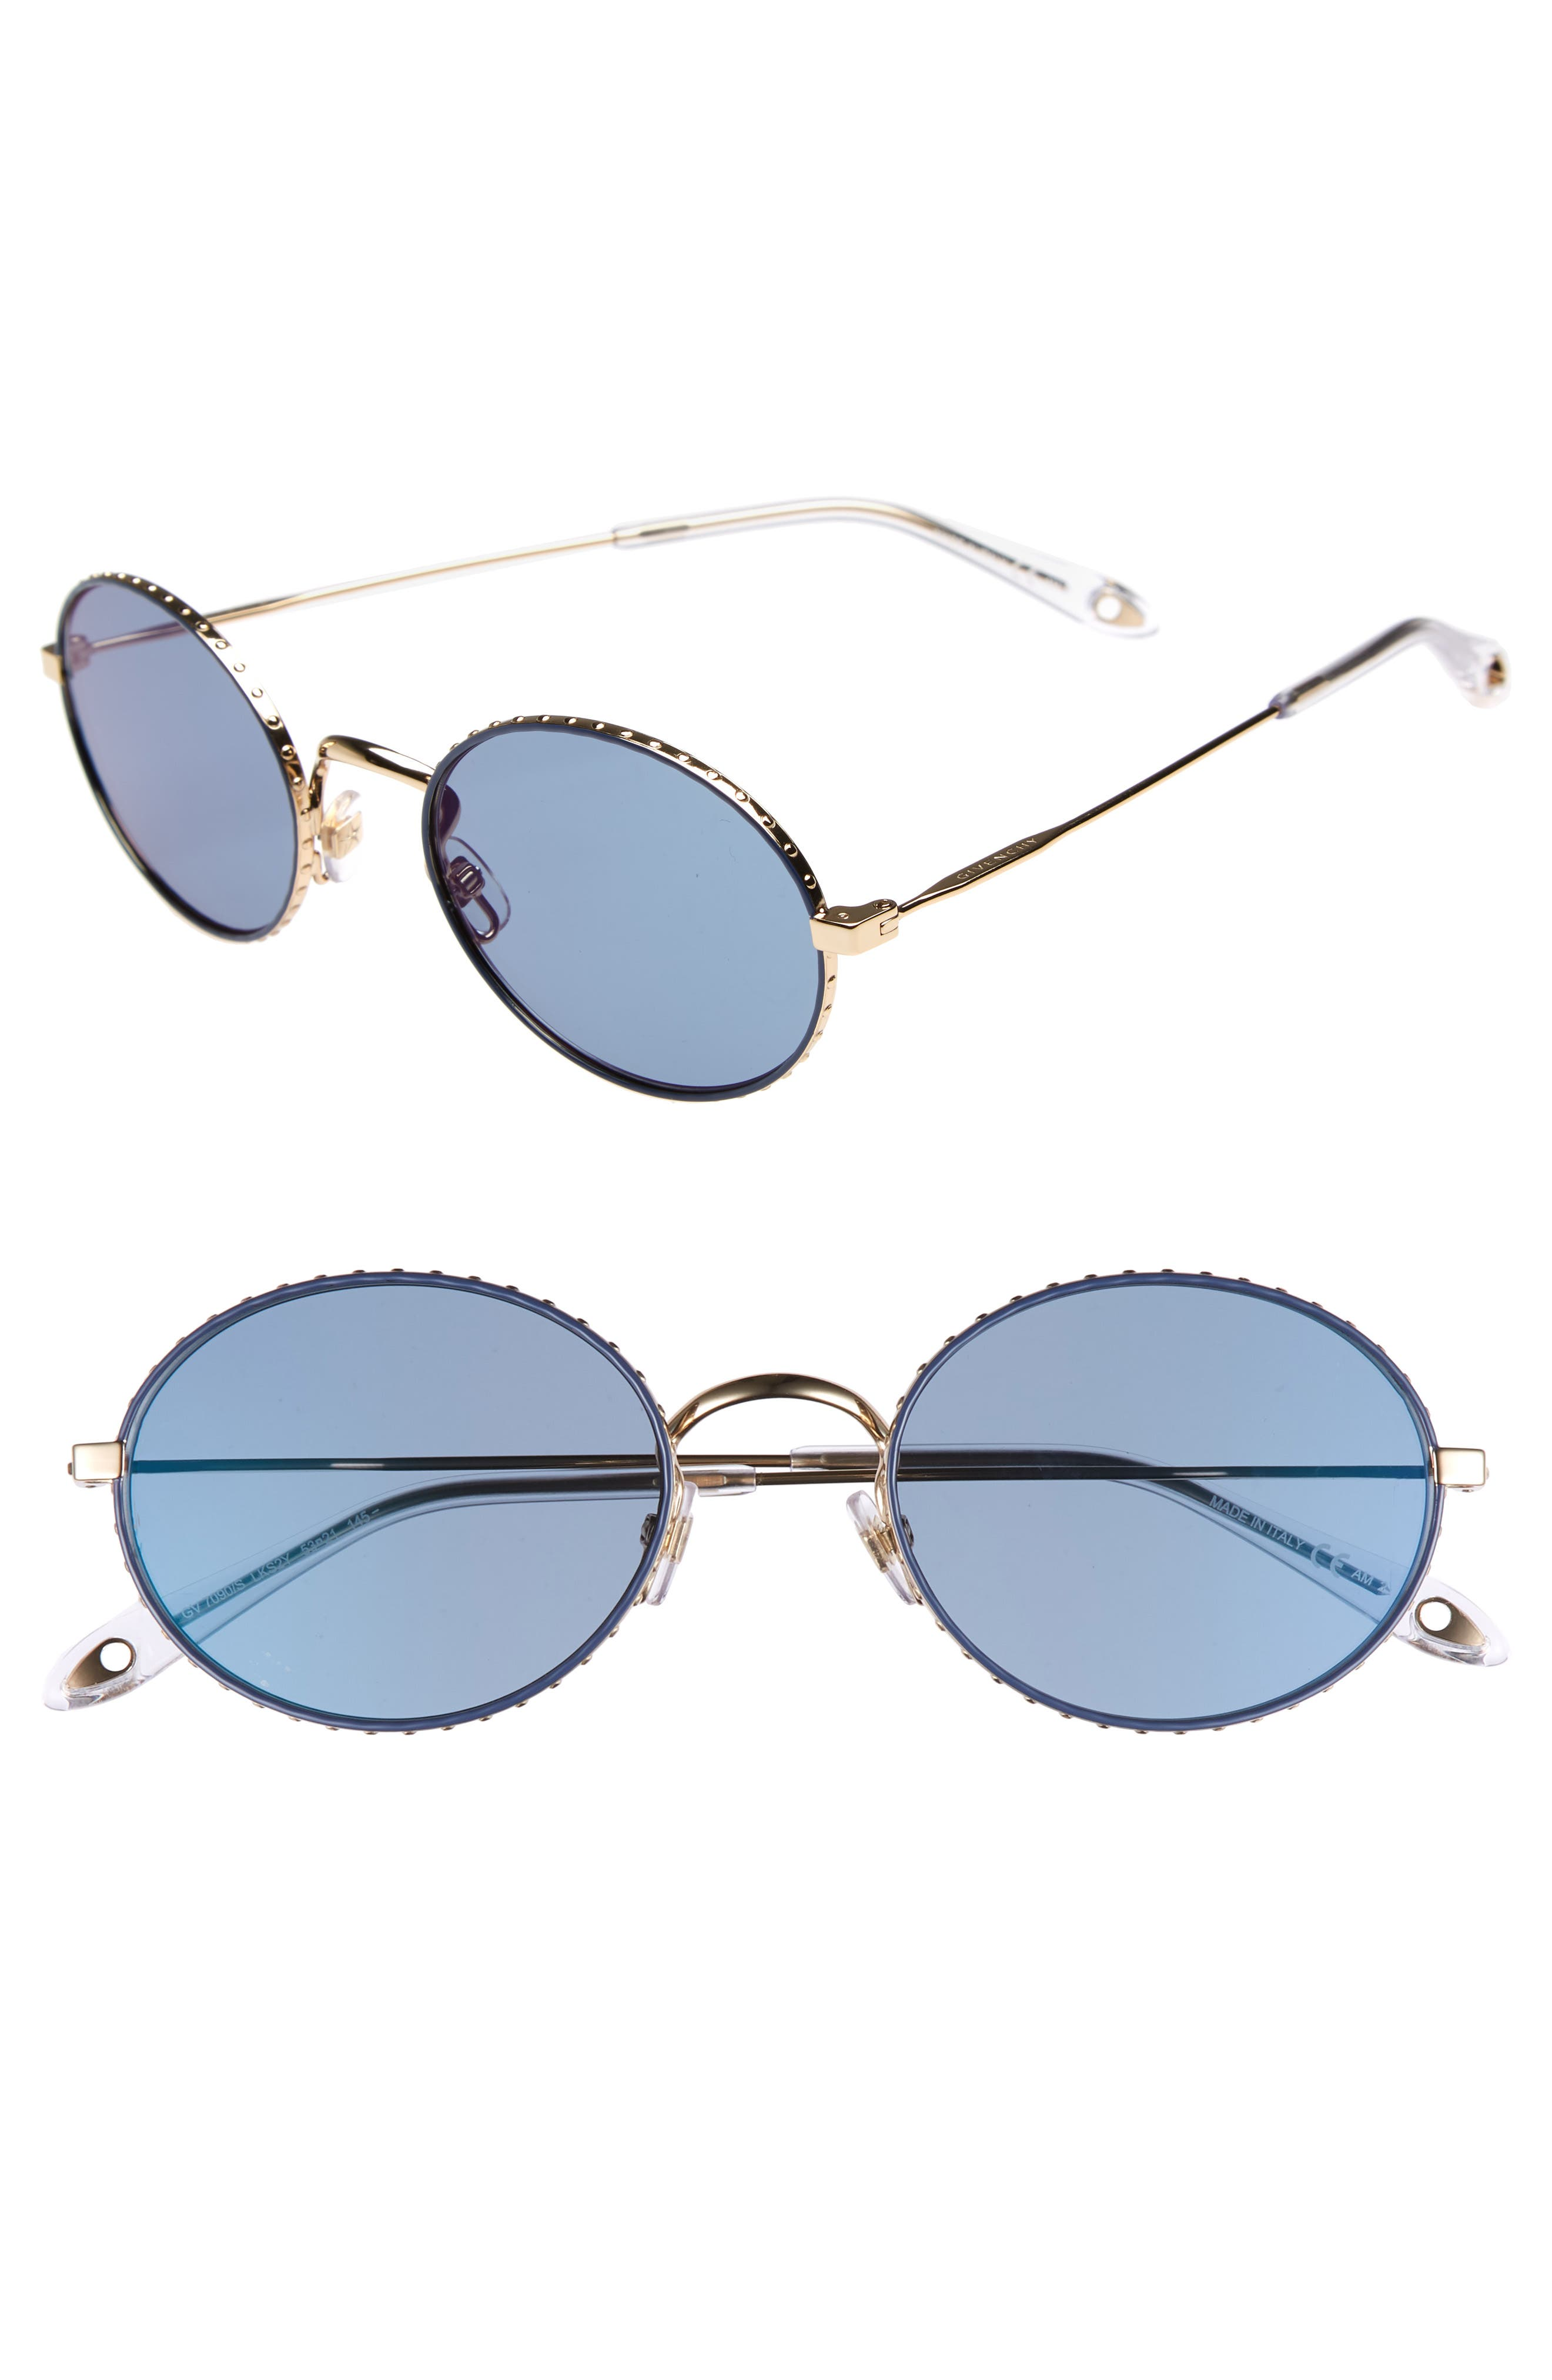 53mm Oval Sunglasses,                         Main,                         color, GOLD/ BLUE